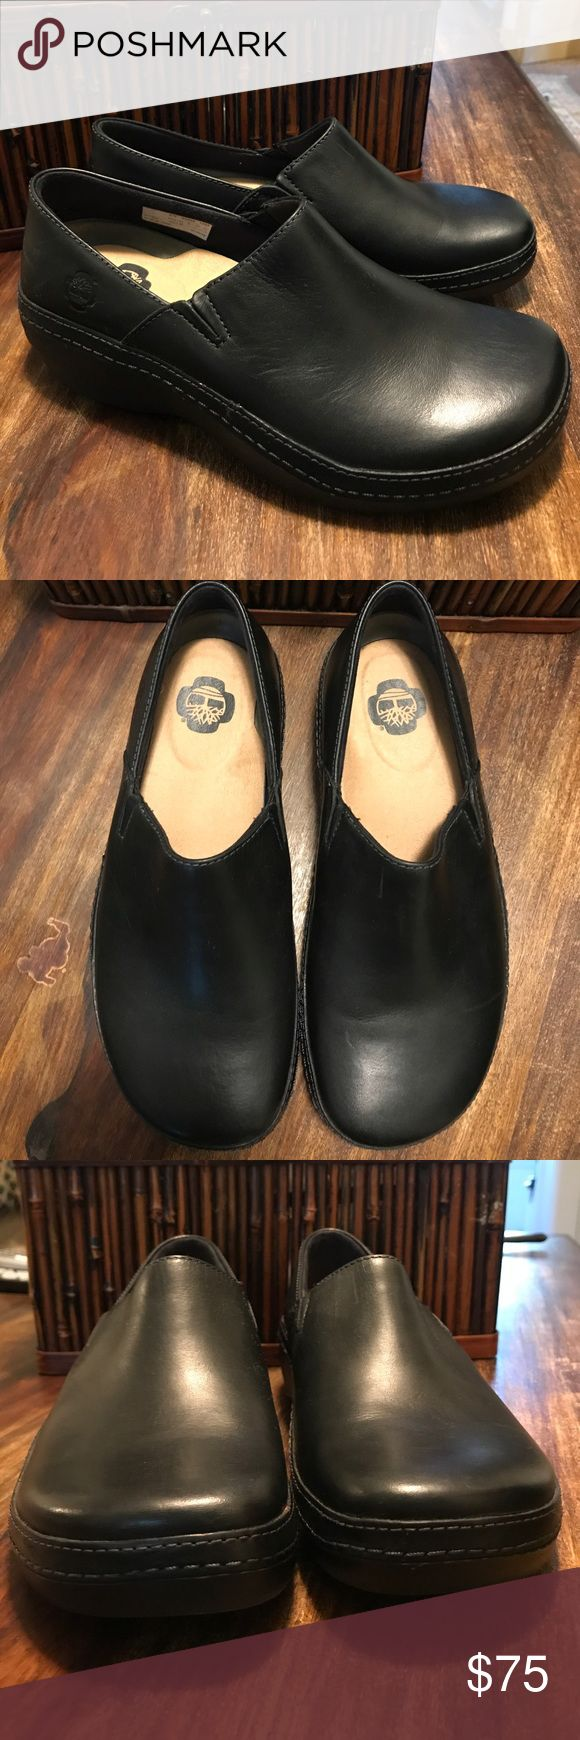 SALE❤️ Timberland Pro nursing clogs 8 W Timberland Pro nursing clogs size 8 Wide in black. Non marking and slip resistant. Worn one time and decided they were too big for me. Like new! Timberland Shoes Mules & Clogs